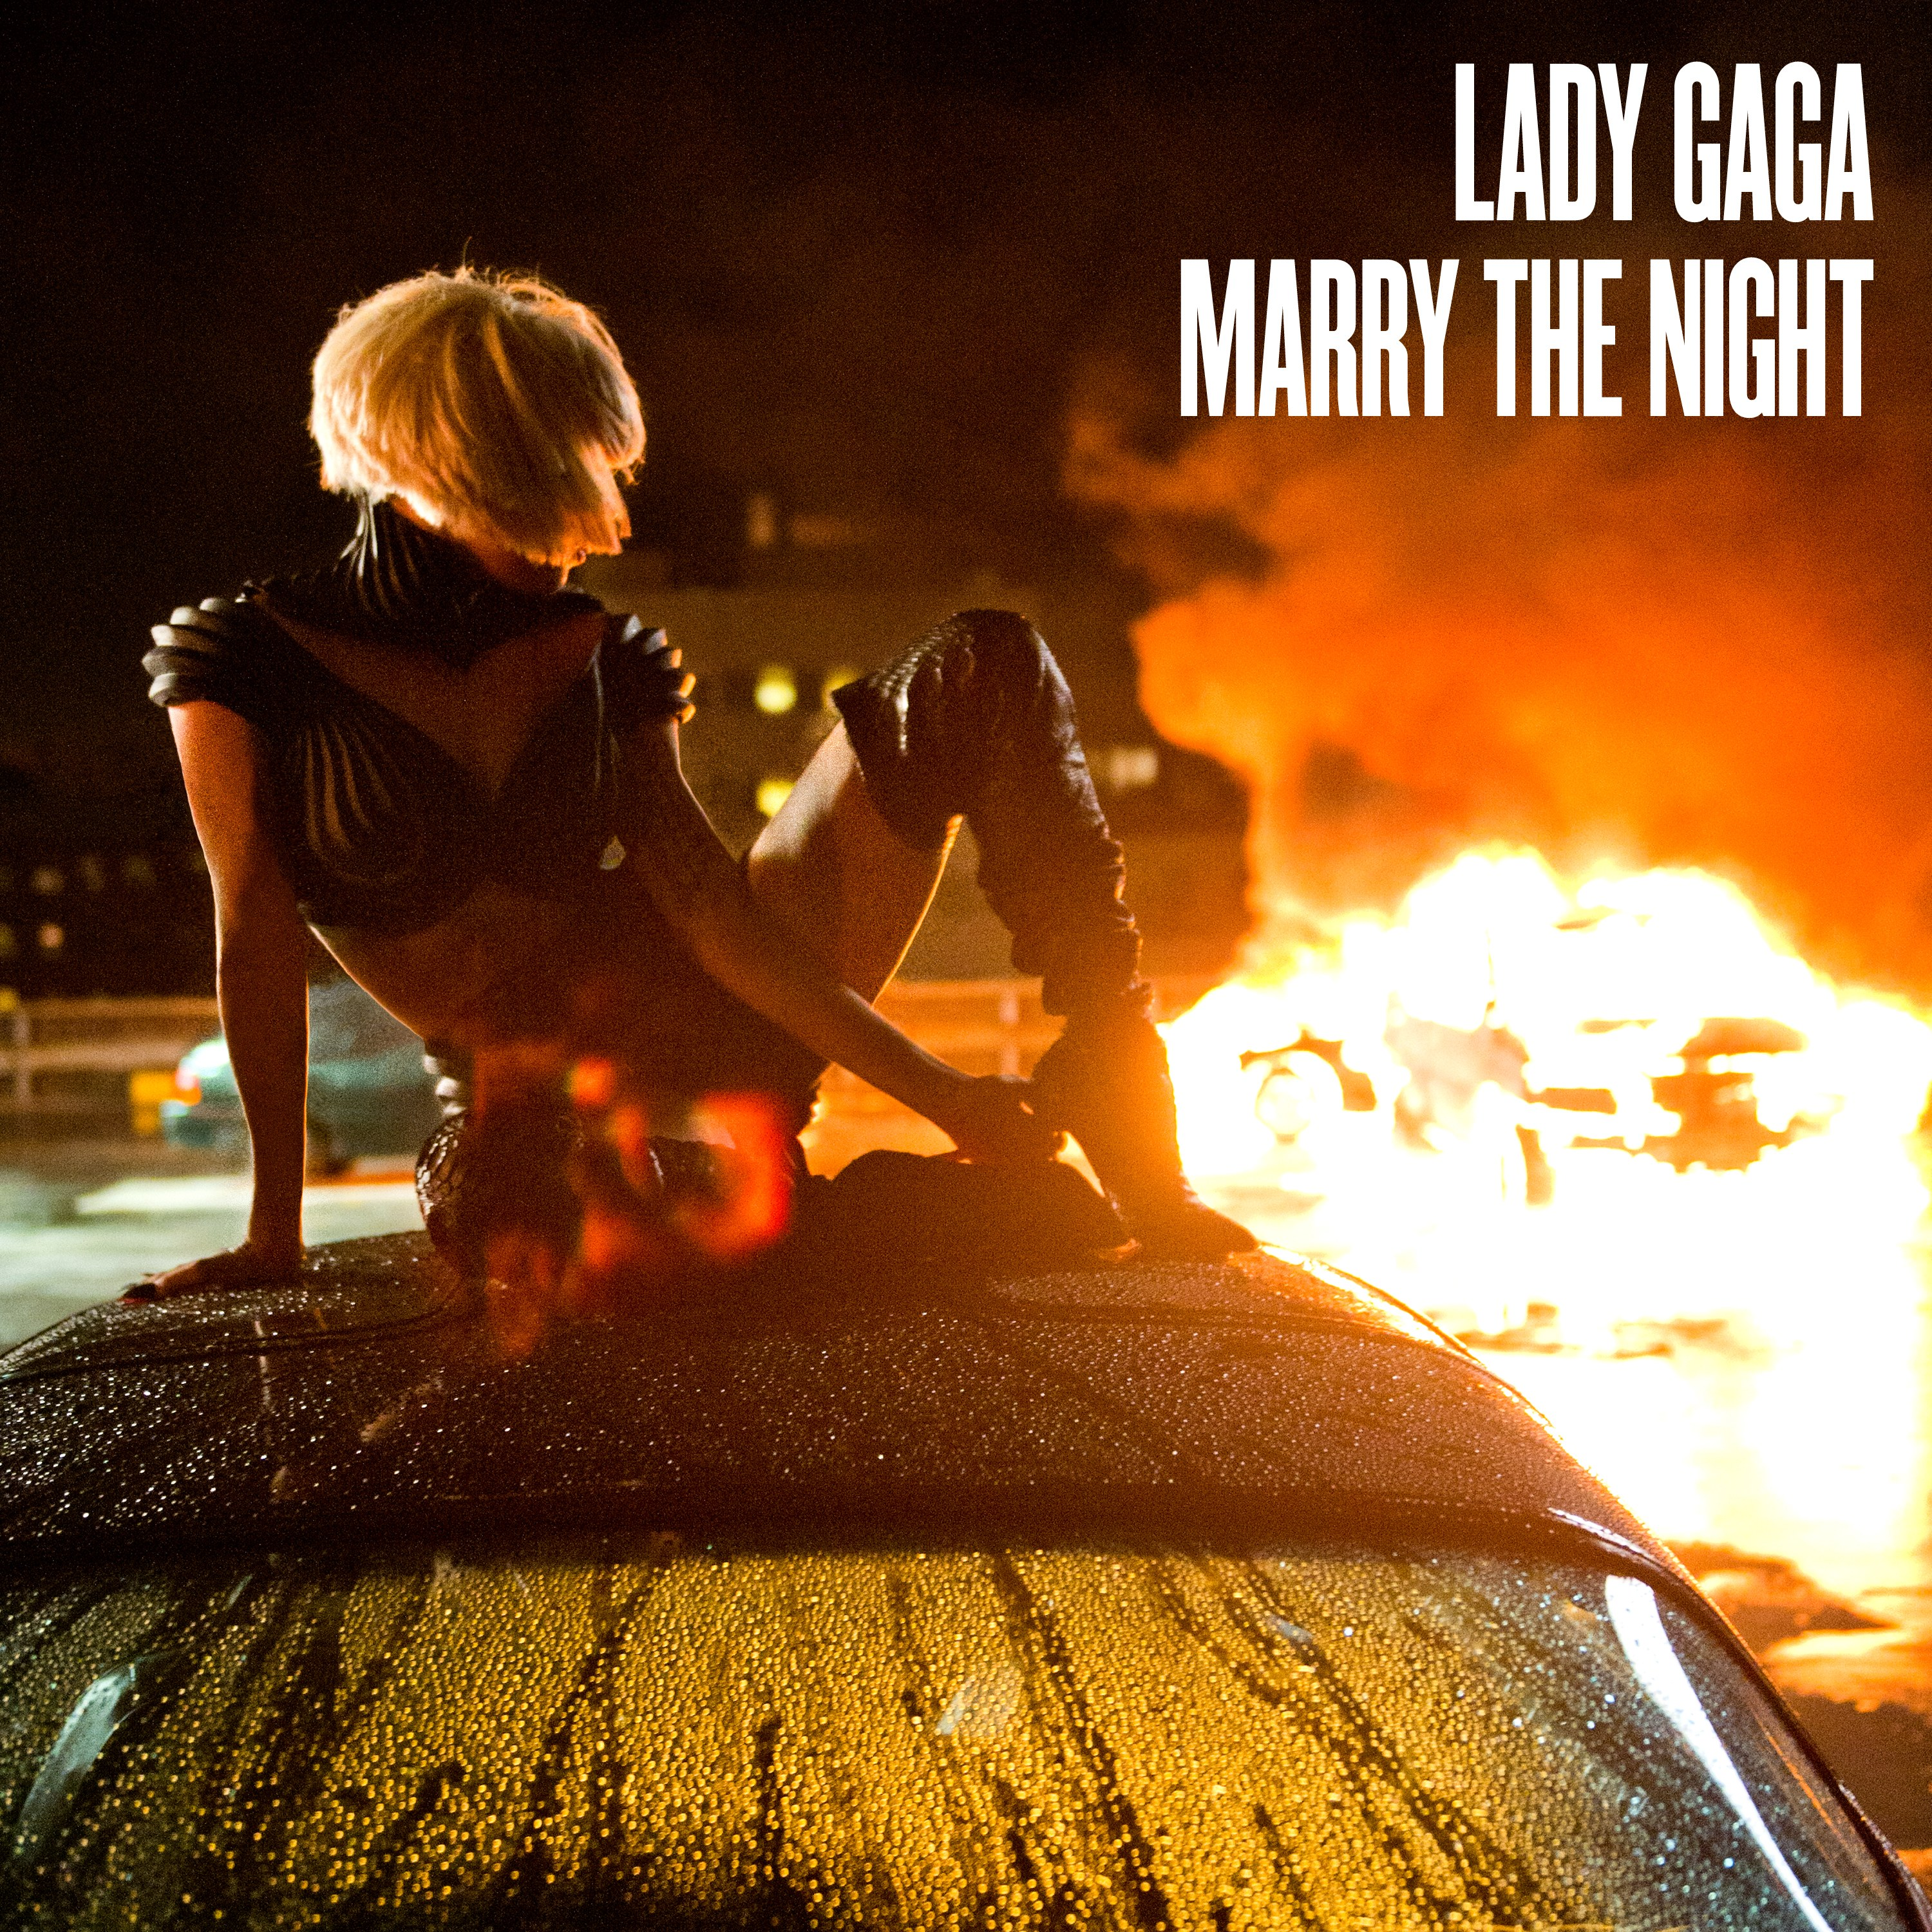 Lady gaga - marry the night (the remixes) 2011 / mp3 / 320 house